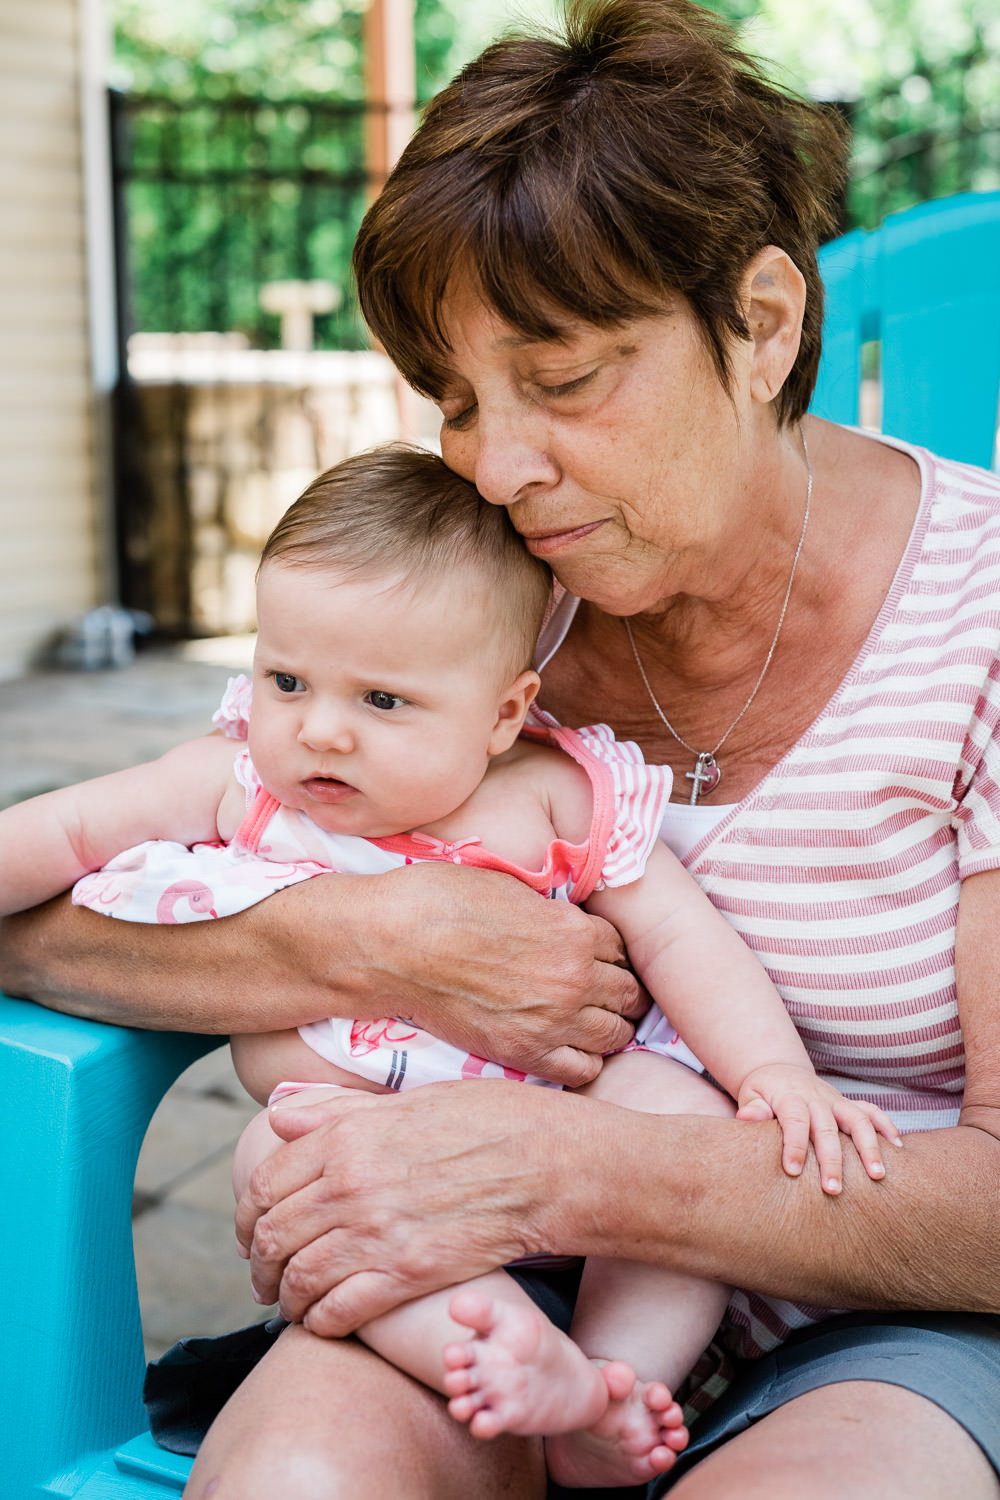 A grandmother holds her granddaughter.